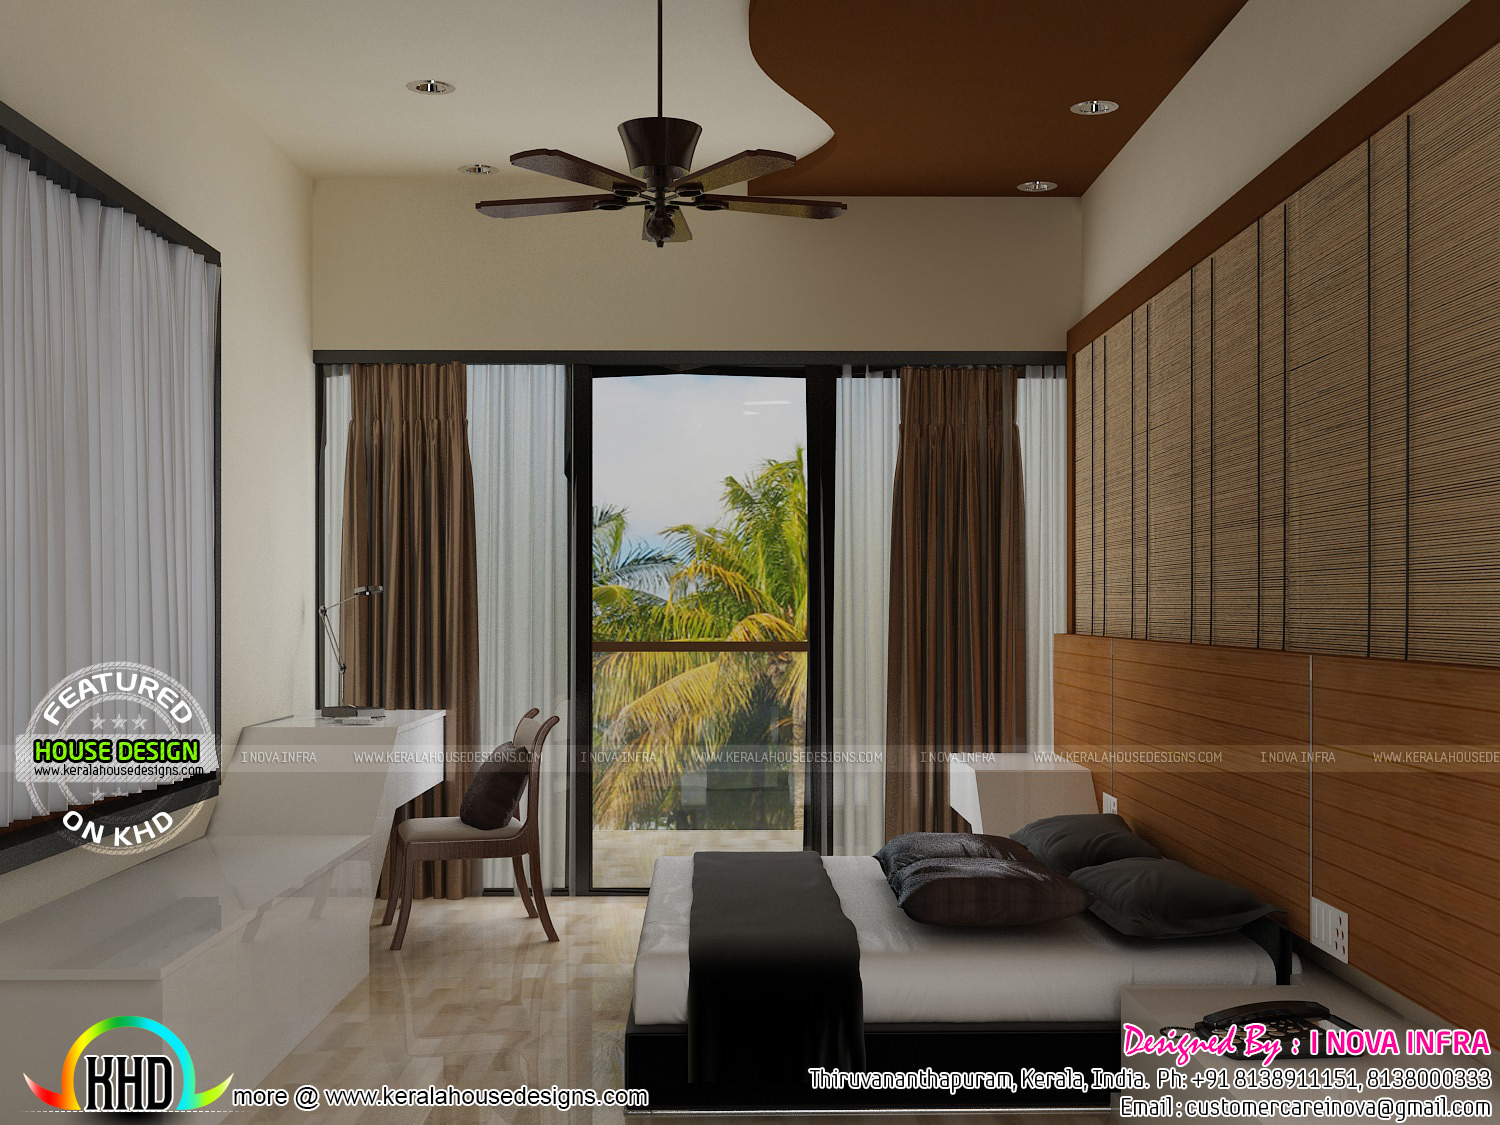 Balcony dining bedroom and staircase interior kerala home design and floor plans - Best bedroom with balcony interior ...